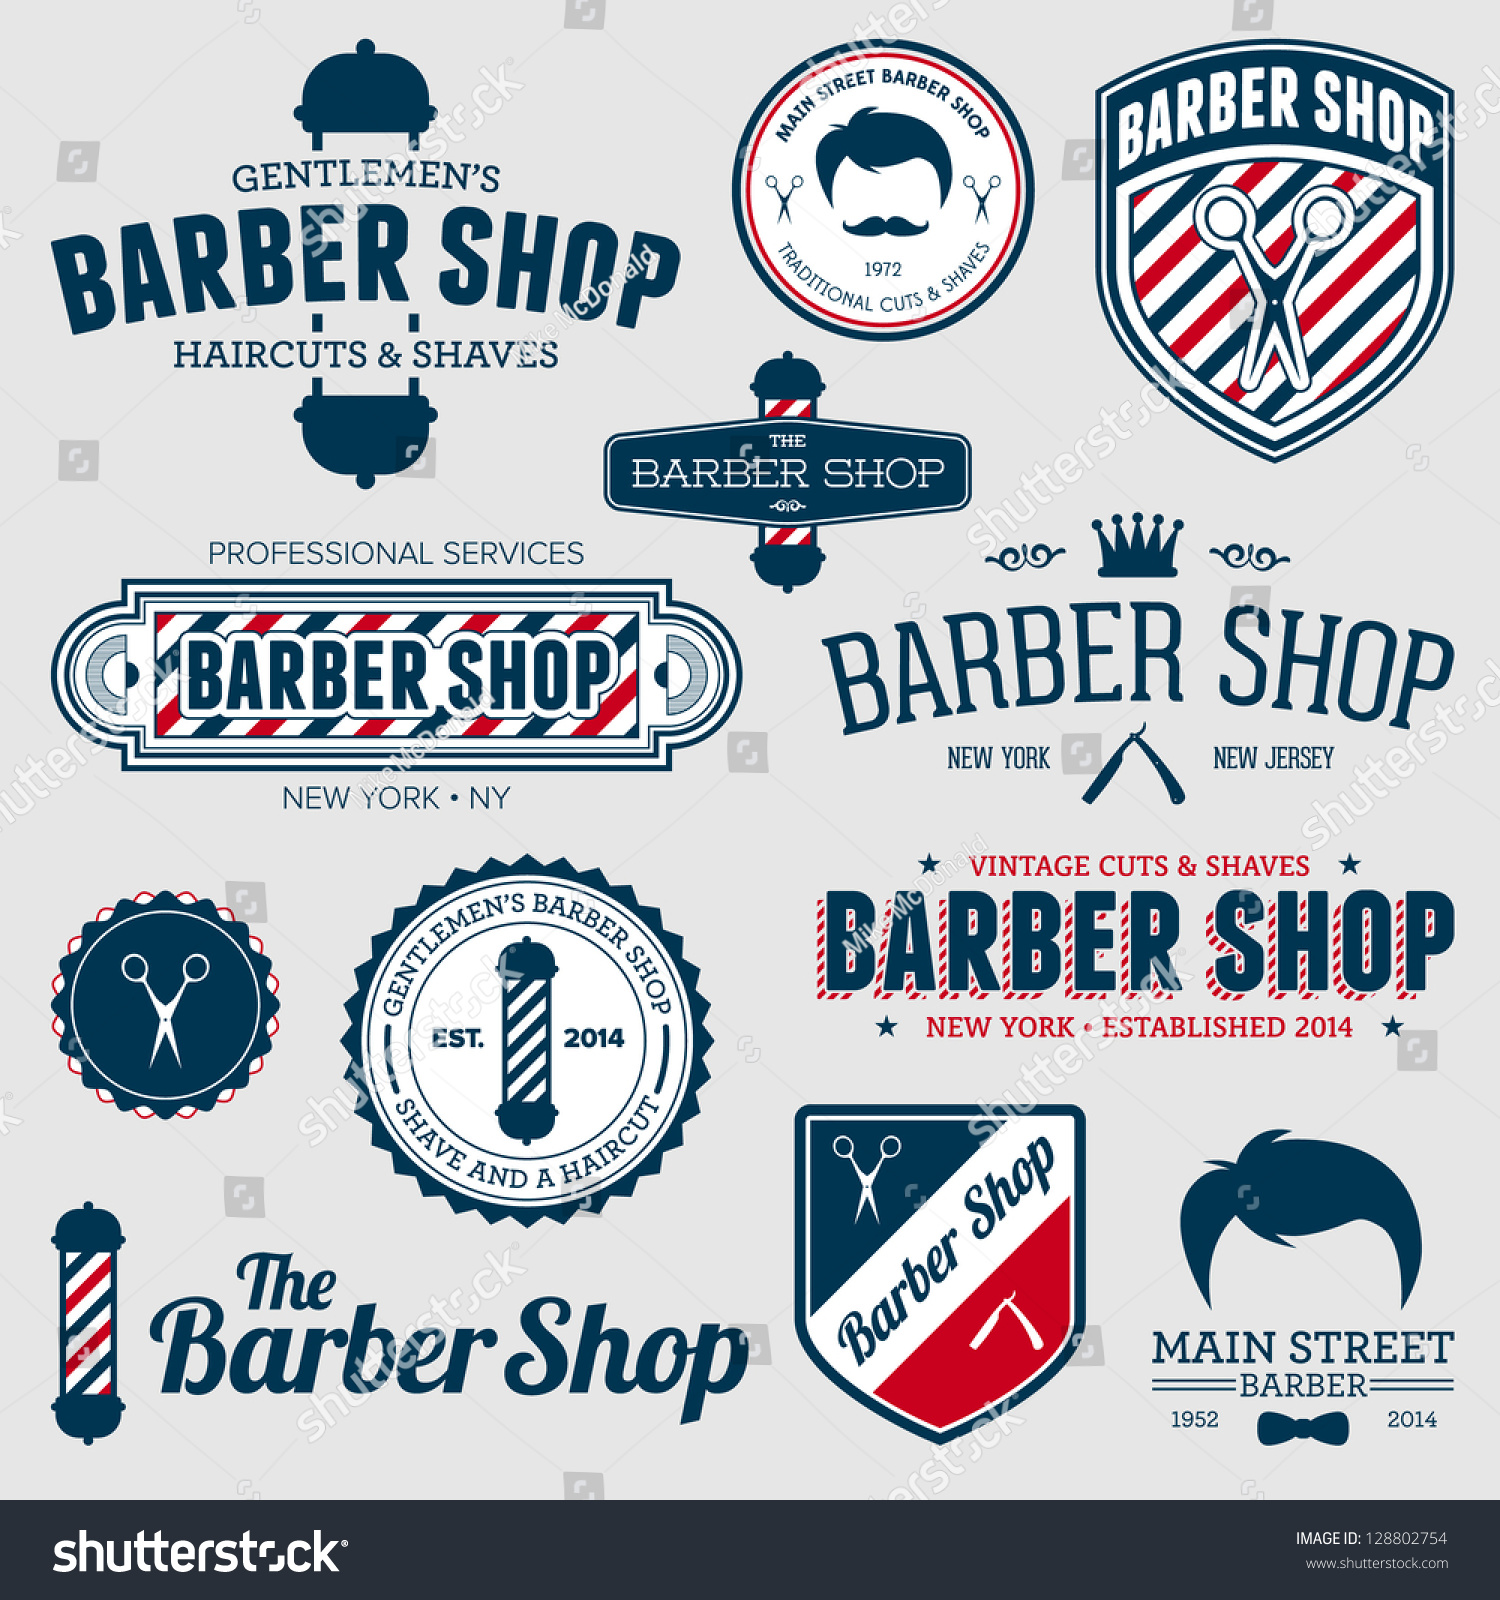 vectors illustrations footage music set of vintage barber shop logo graphics and icons